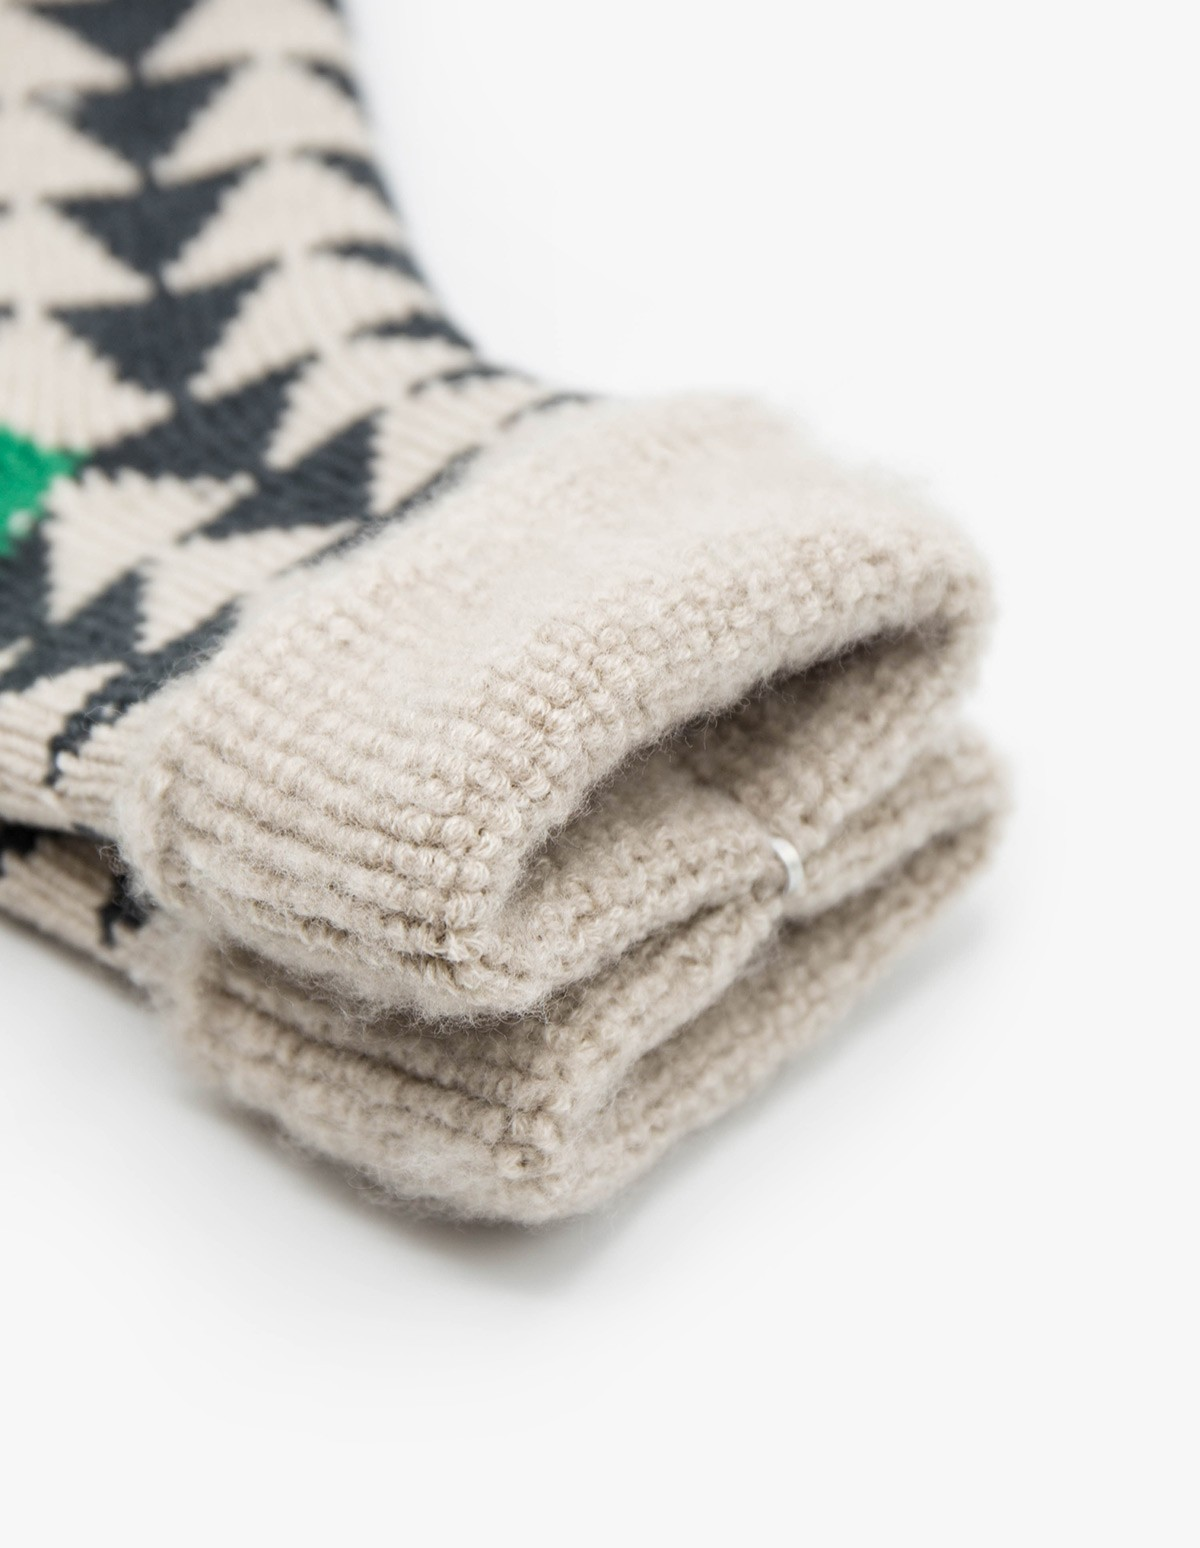 RoToTo Comfy Room Socks  in Charcoal / Green